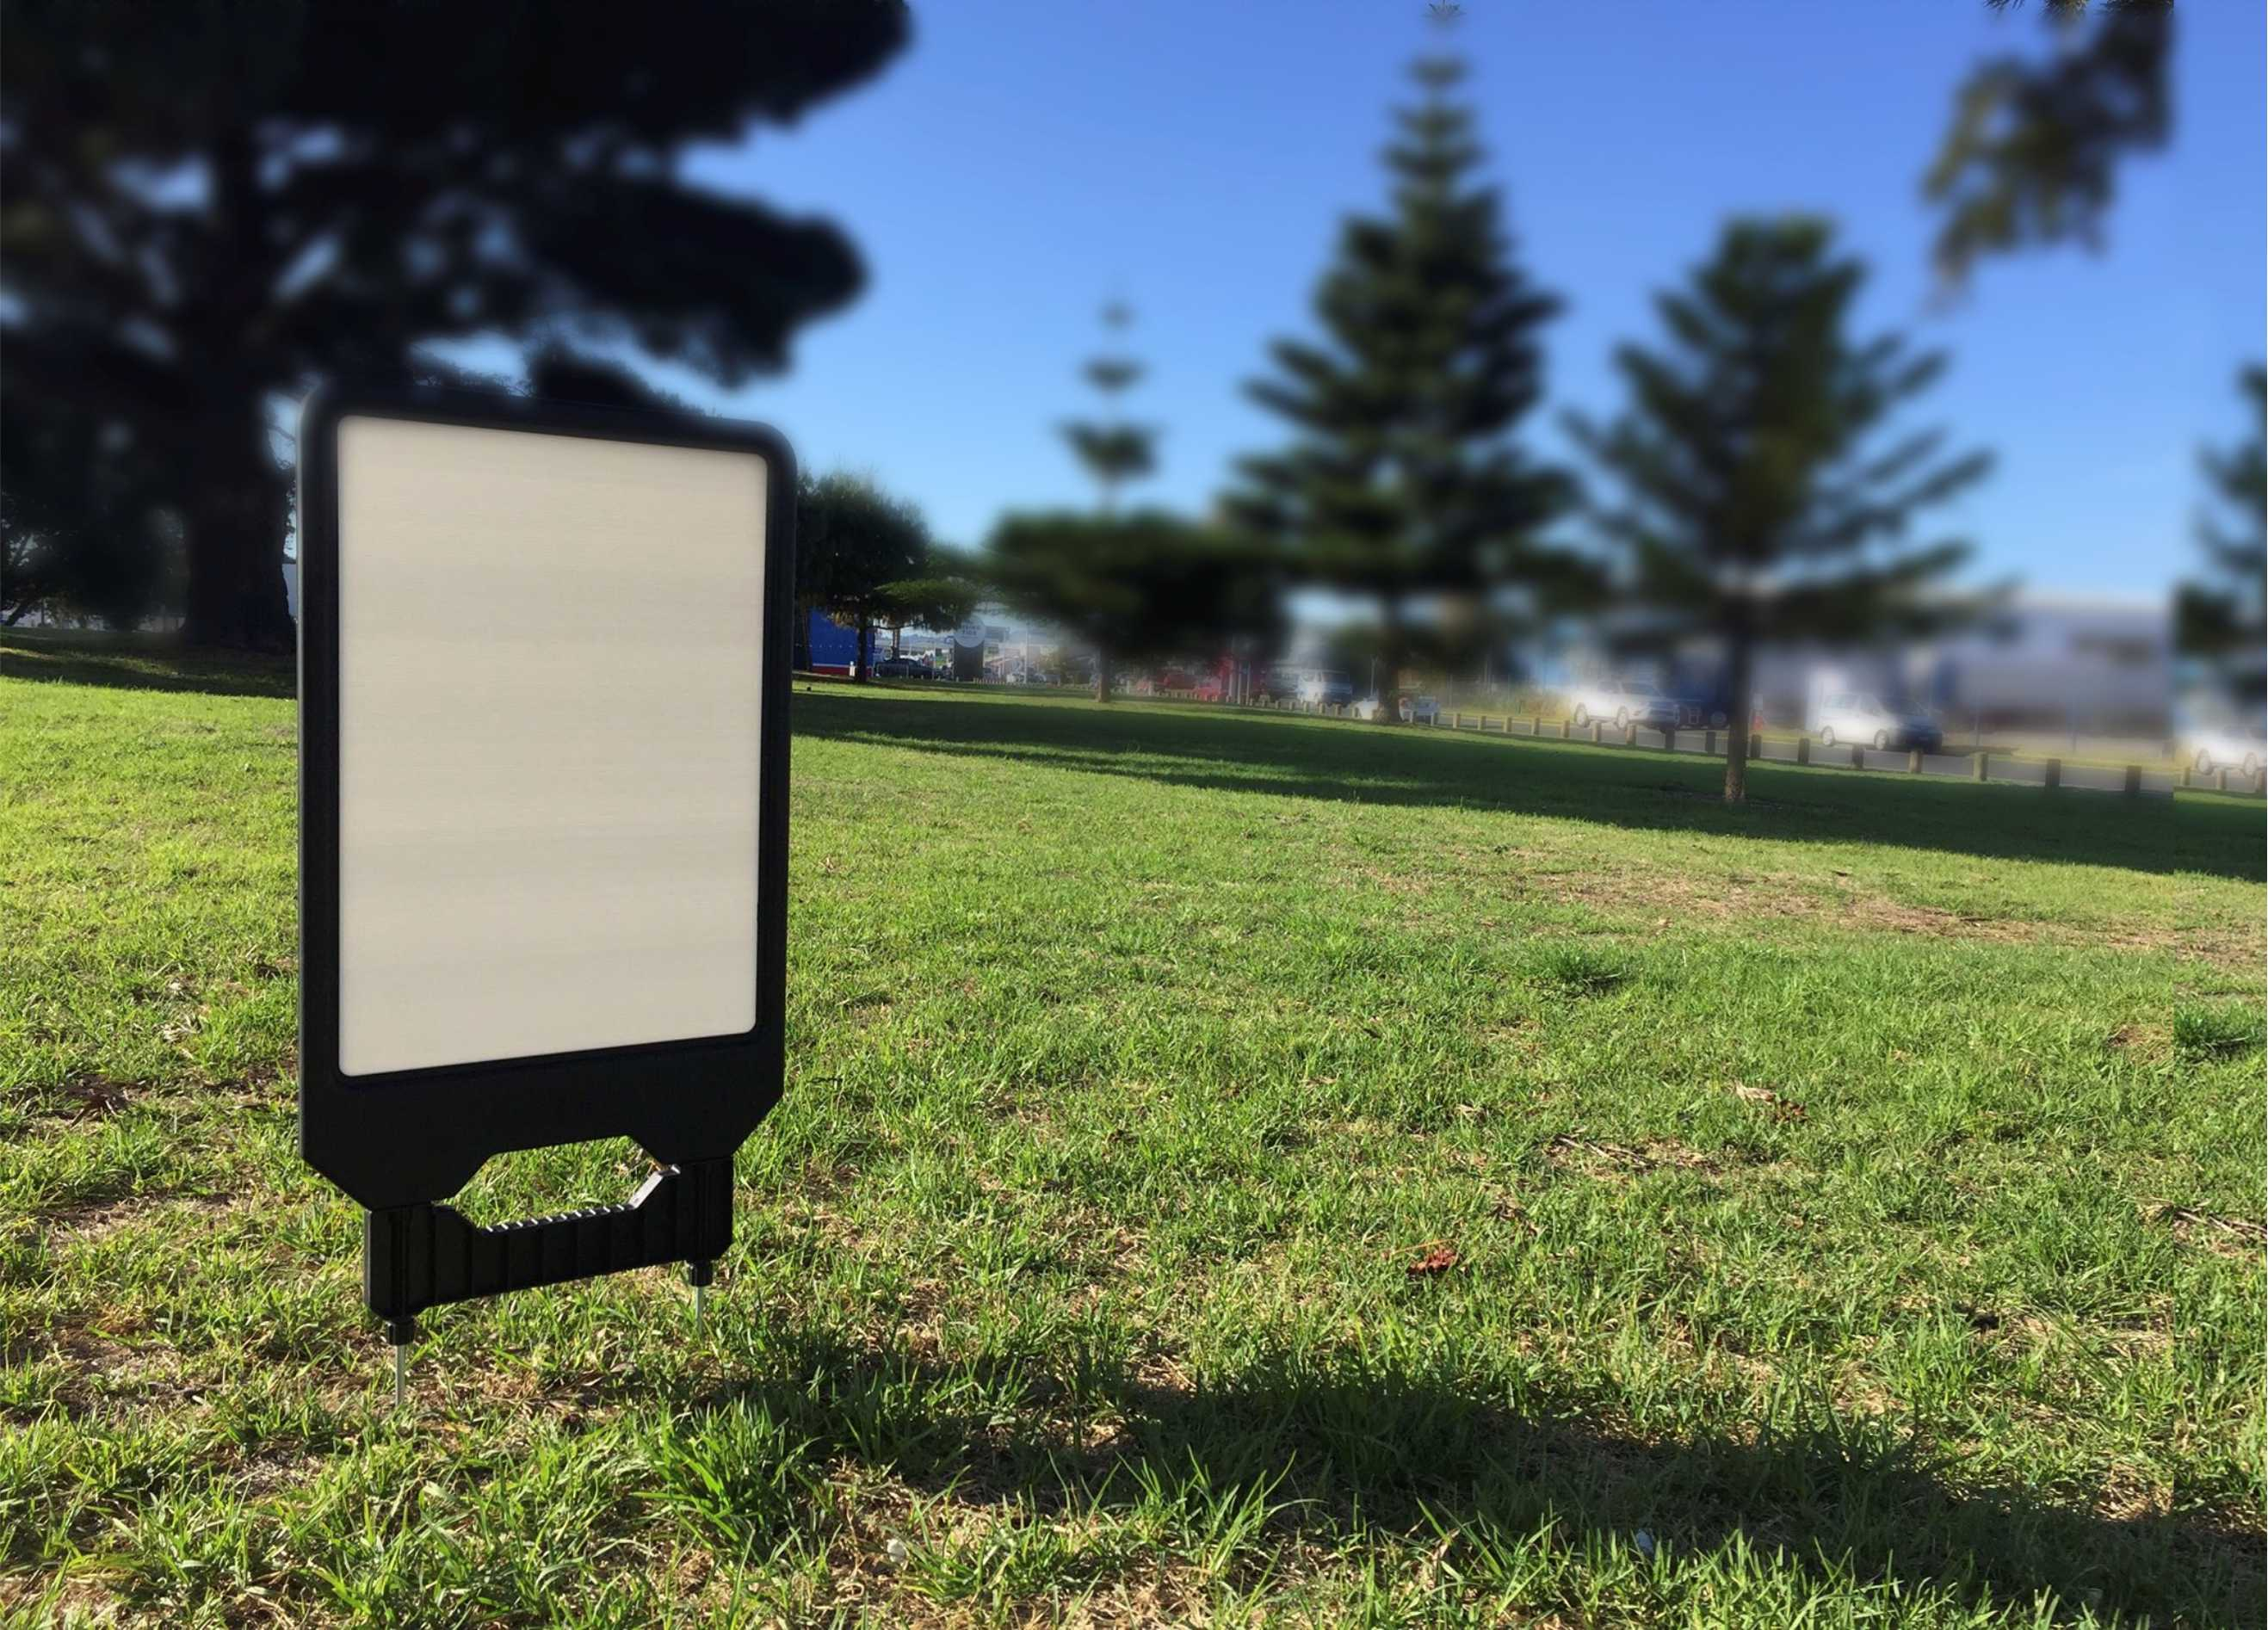 Brandstands interchangeable sign holders make it easy to slips a new message into the sign display holder within minutes.